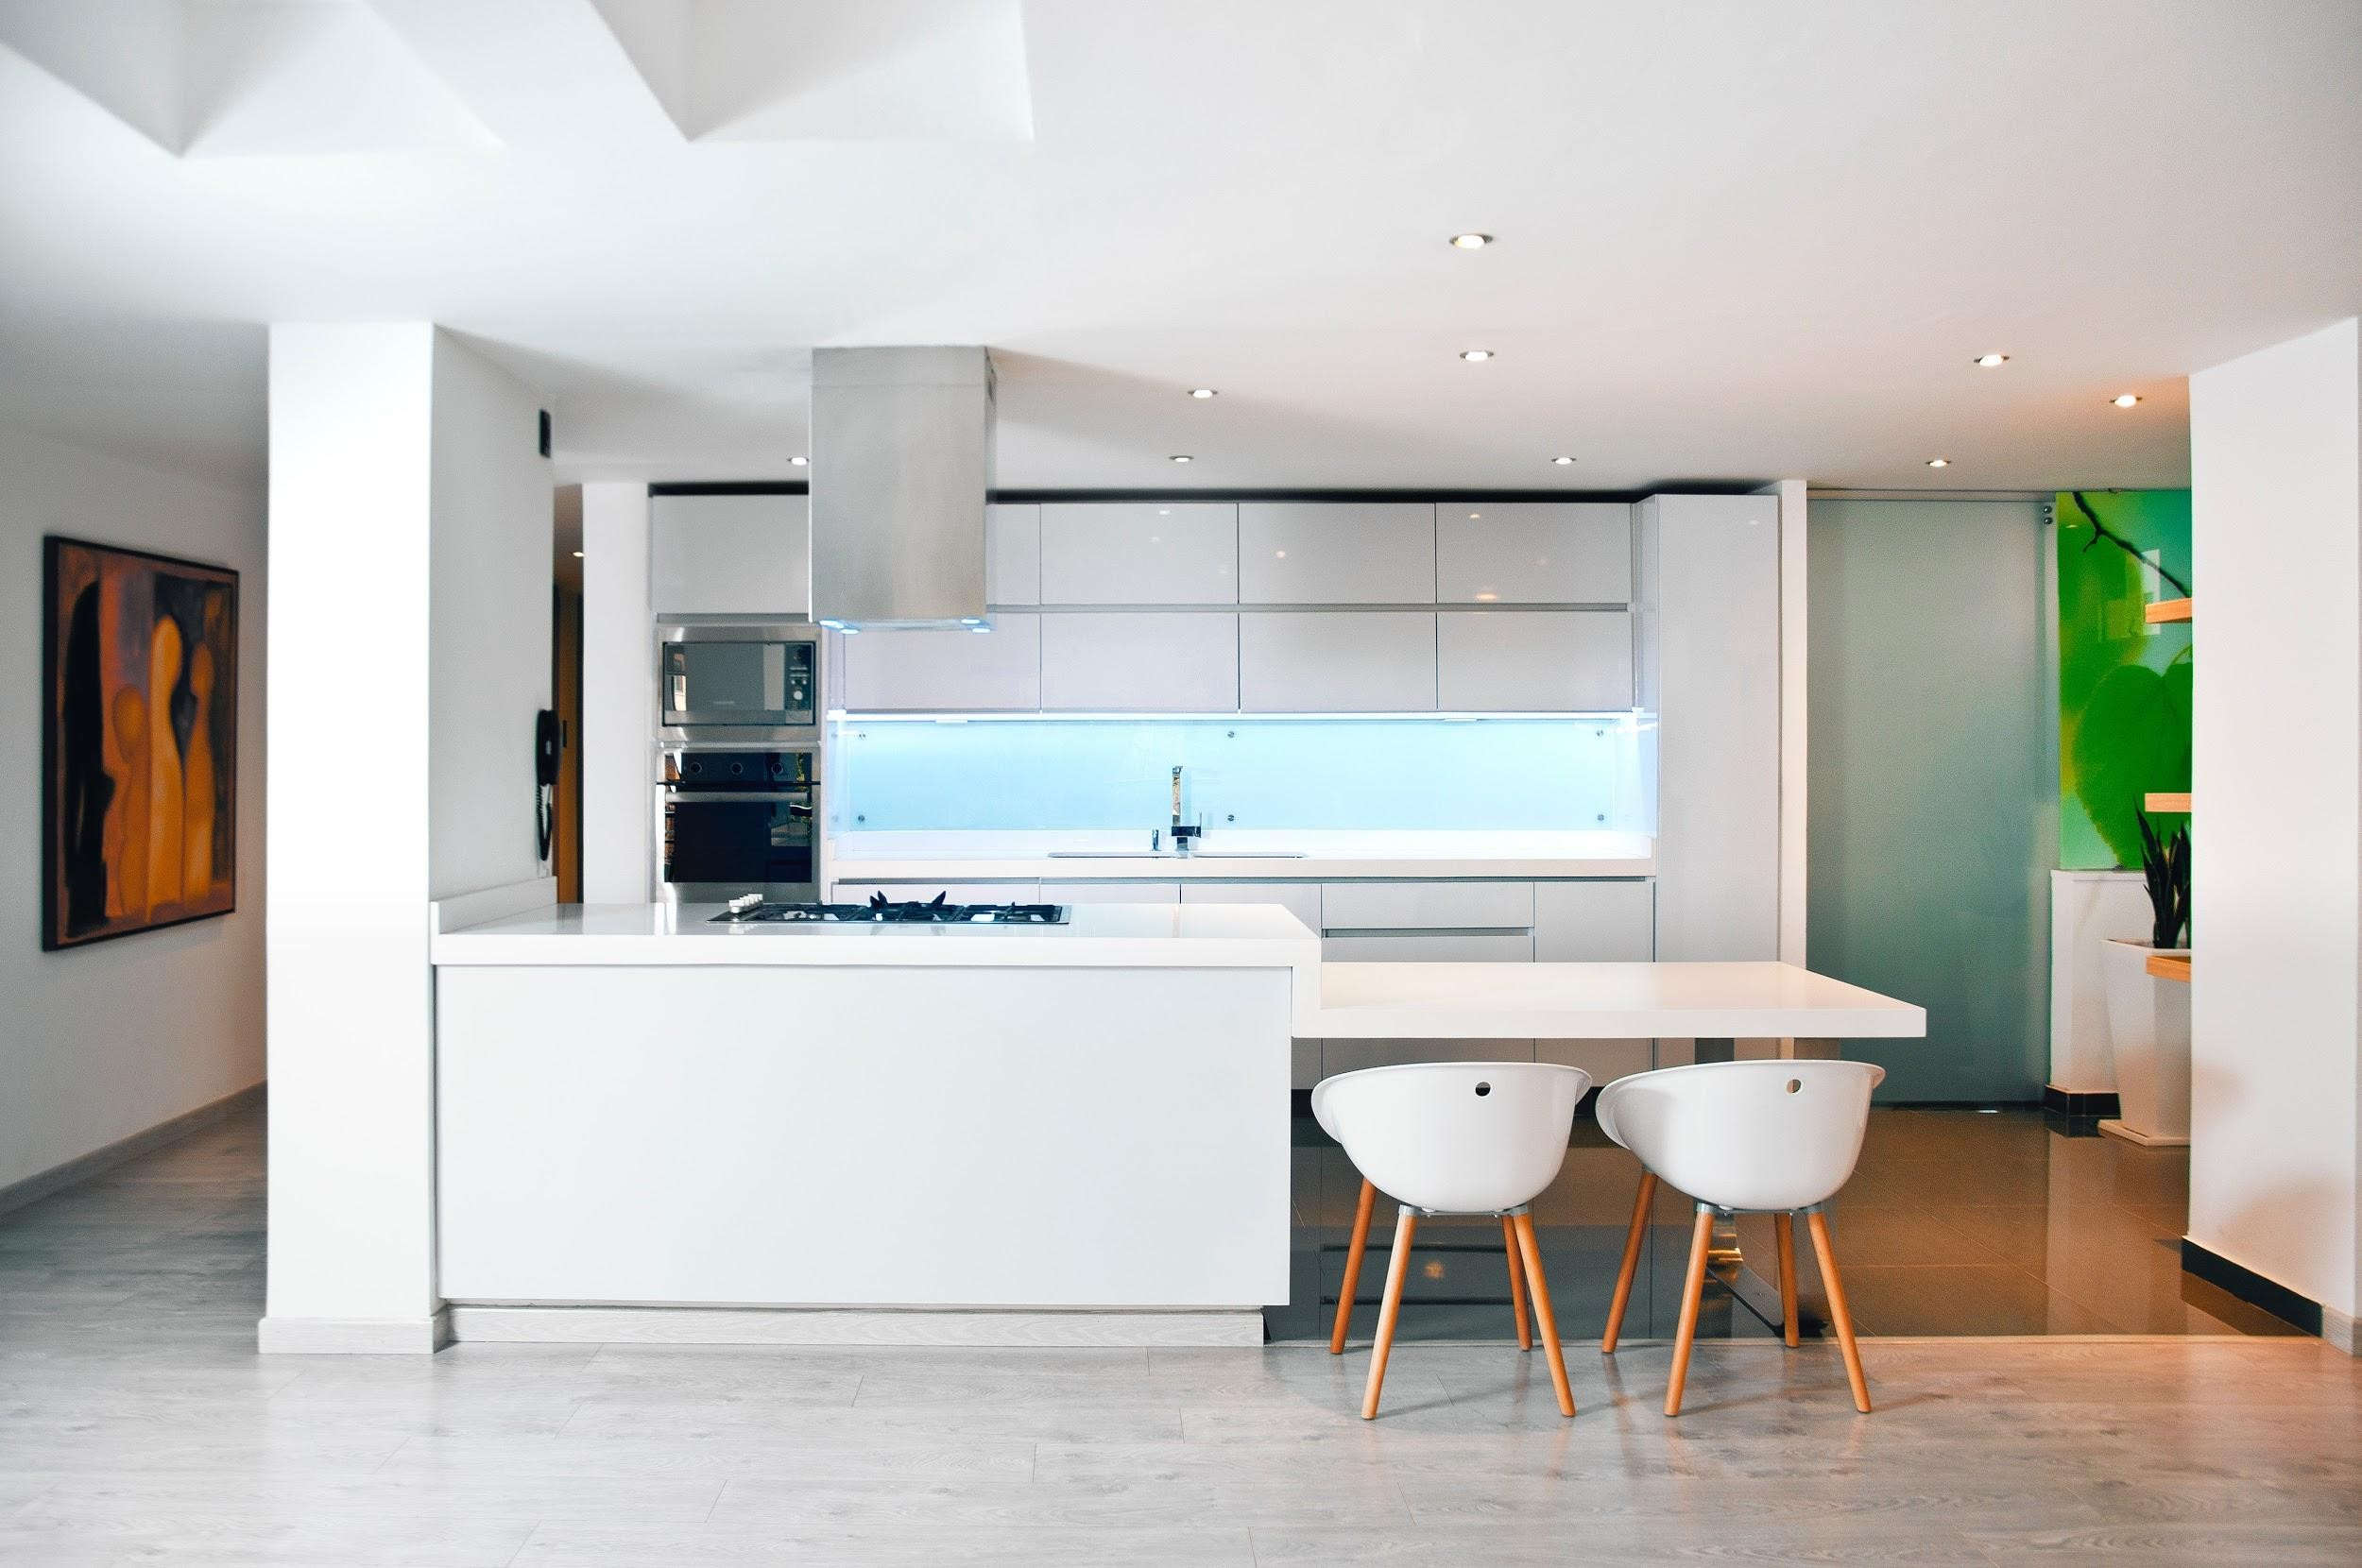 Planning an aesthetic kitchen